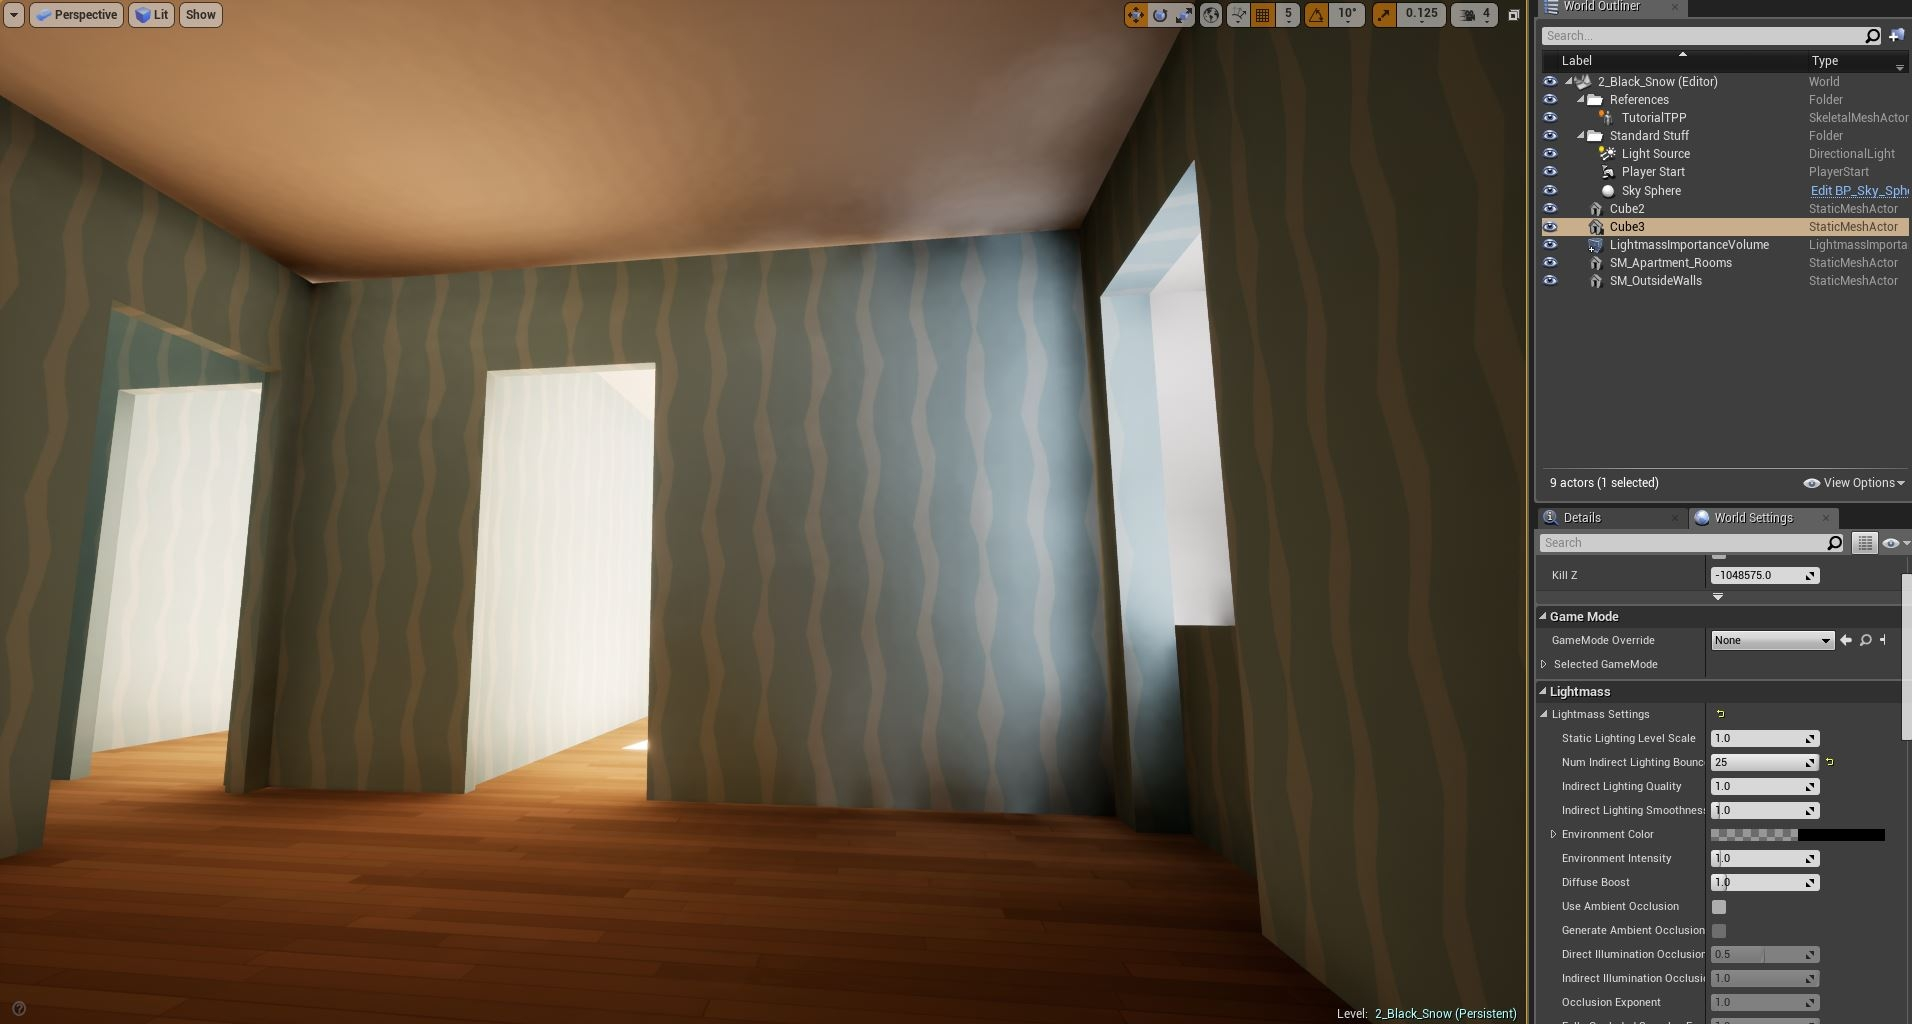 UE4 - Lightmaps] Rules and guidelines for creating rooms? — polycount